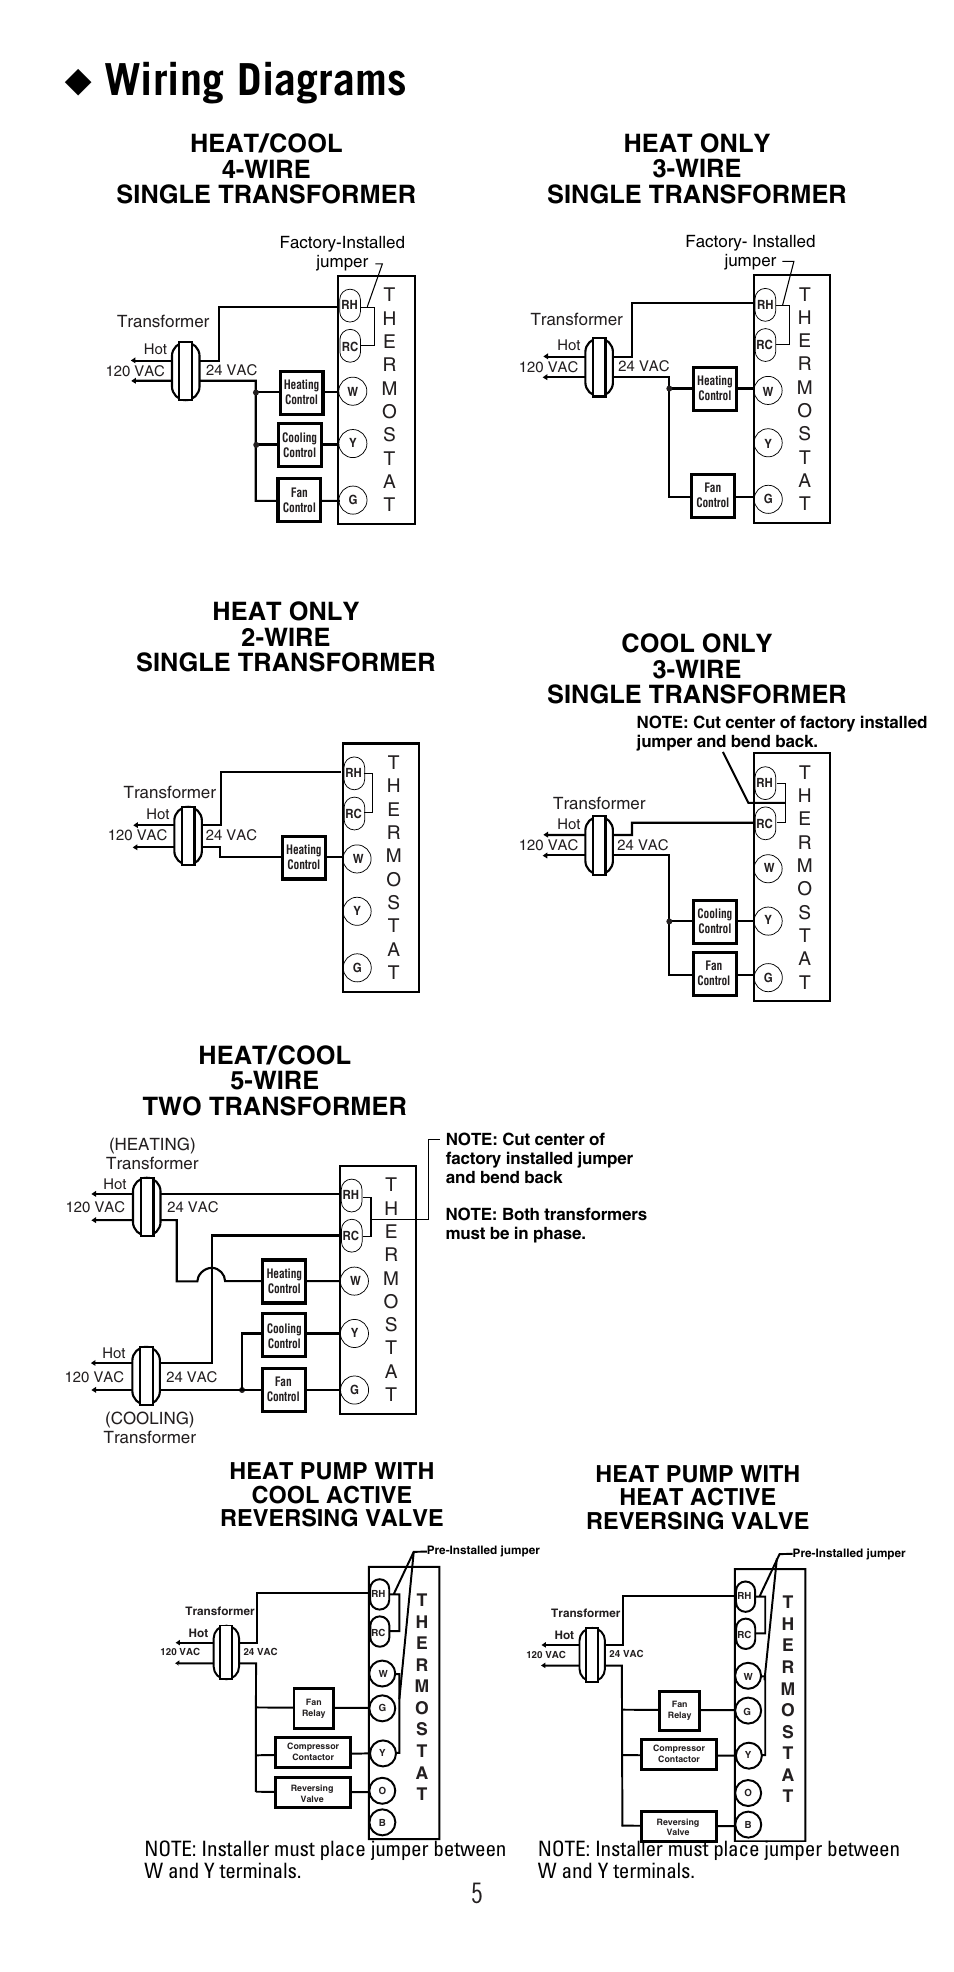 Wiring diagrams, Heat pump with cool active reversing valve, Heat pump with  heat active